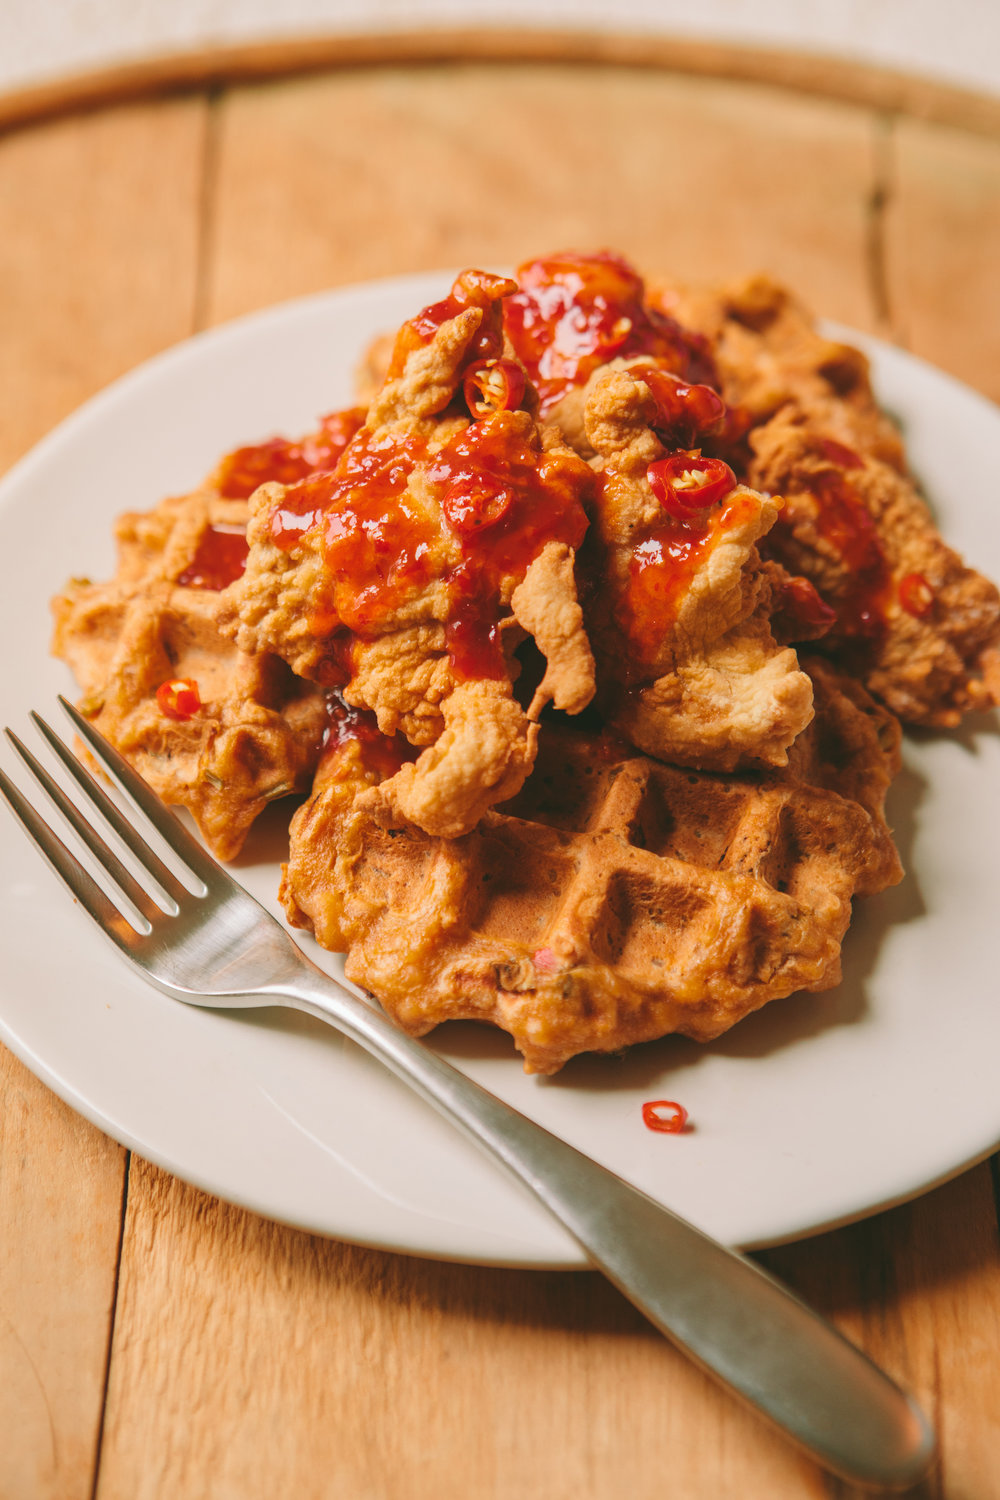 The Art of the Mashup_General Gau Chicken and Pork Fried Waffles_Brian Samuels Photography_January 2017-8915.jpg